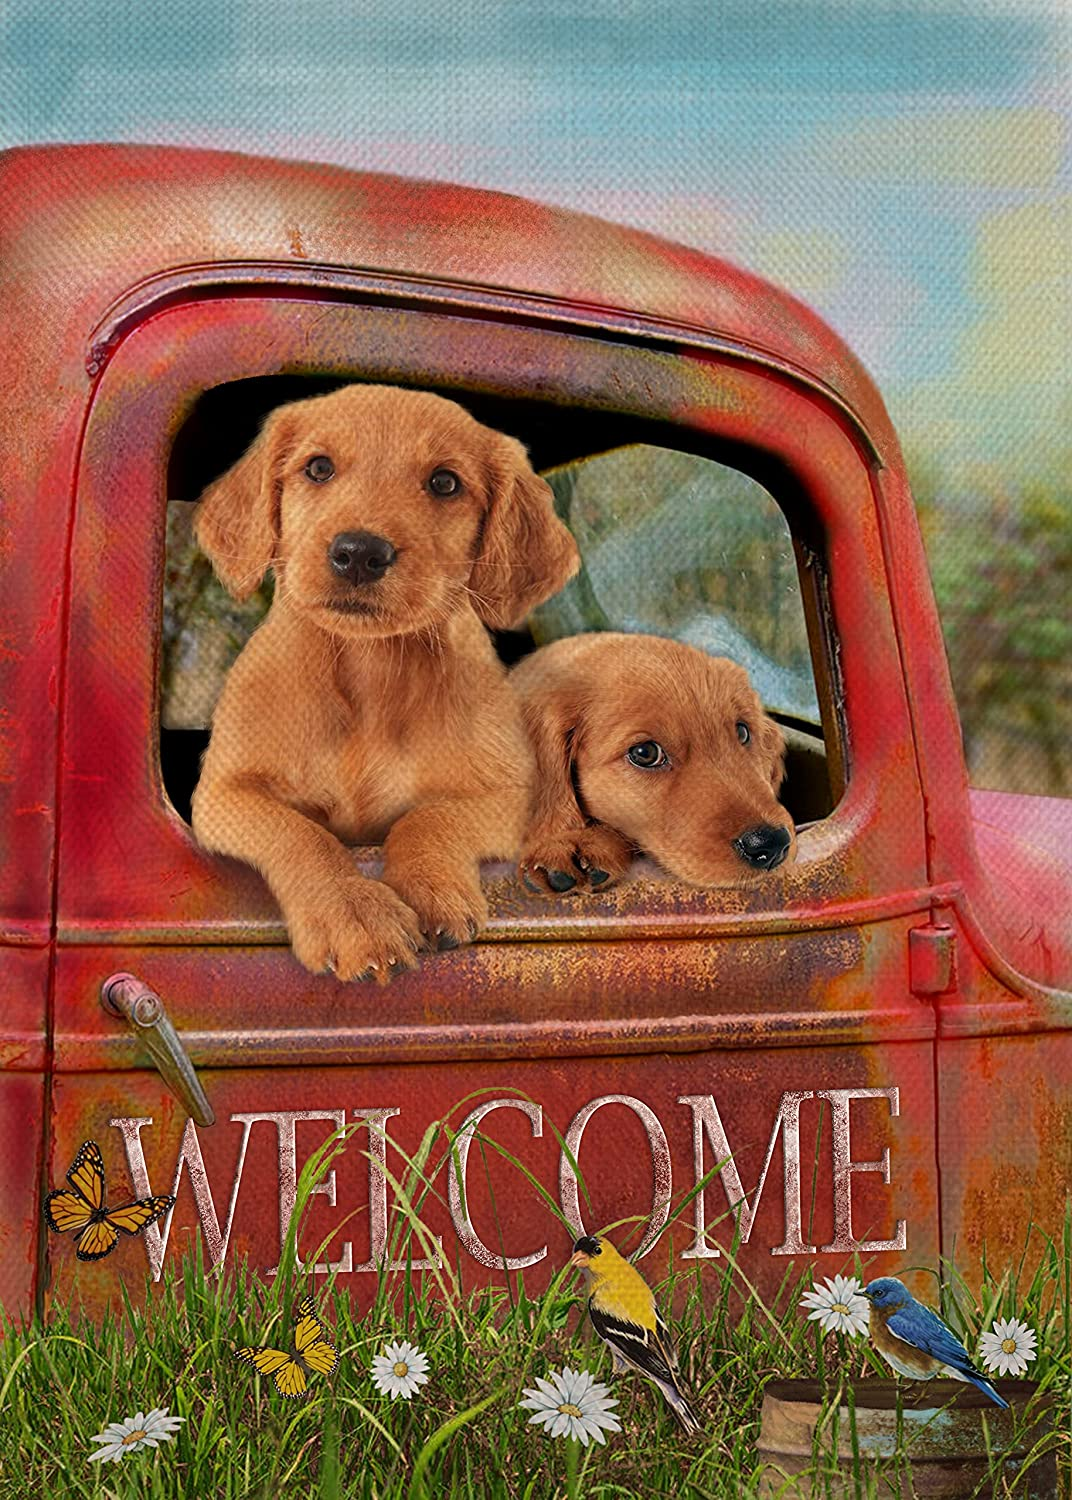 Covido Home Decorative Welcome Summer Garden Flag, Red Truck Dog House Yard Puppy Decor Daisy Flower Bird Butterfly Outside Decoration, Golden Retriever Outdoor Small Burlap Flag Double Sided 12 x 18